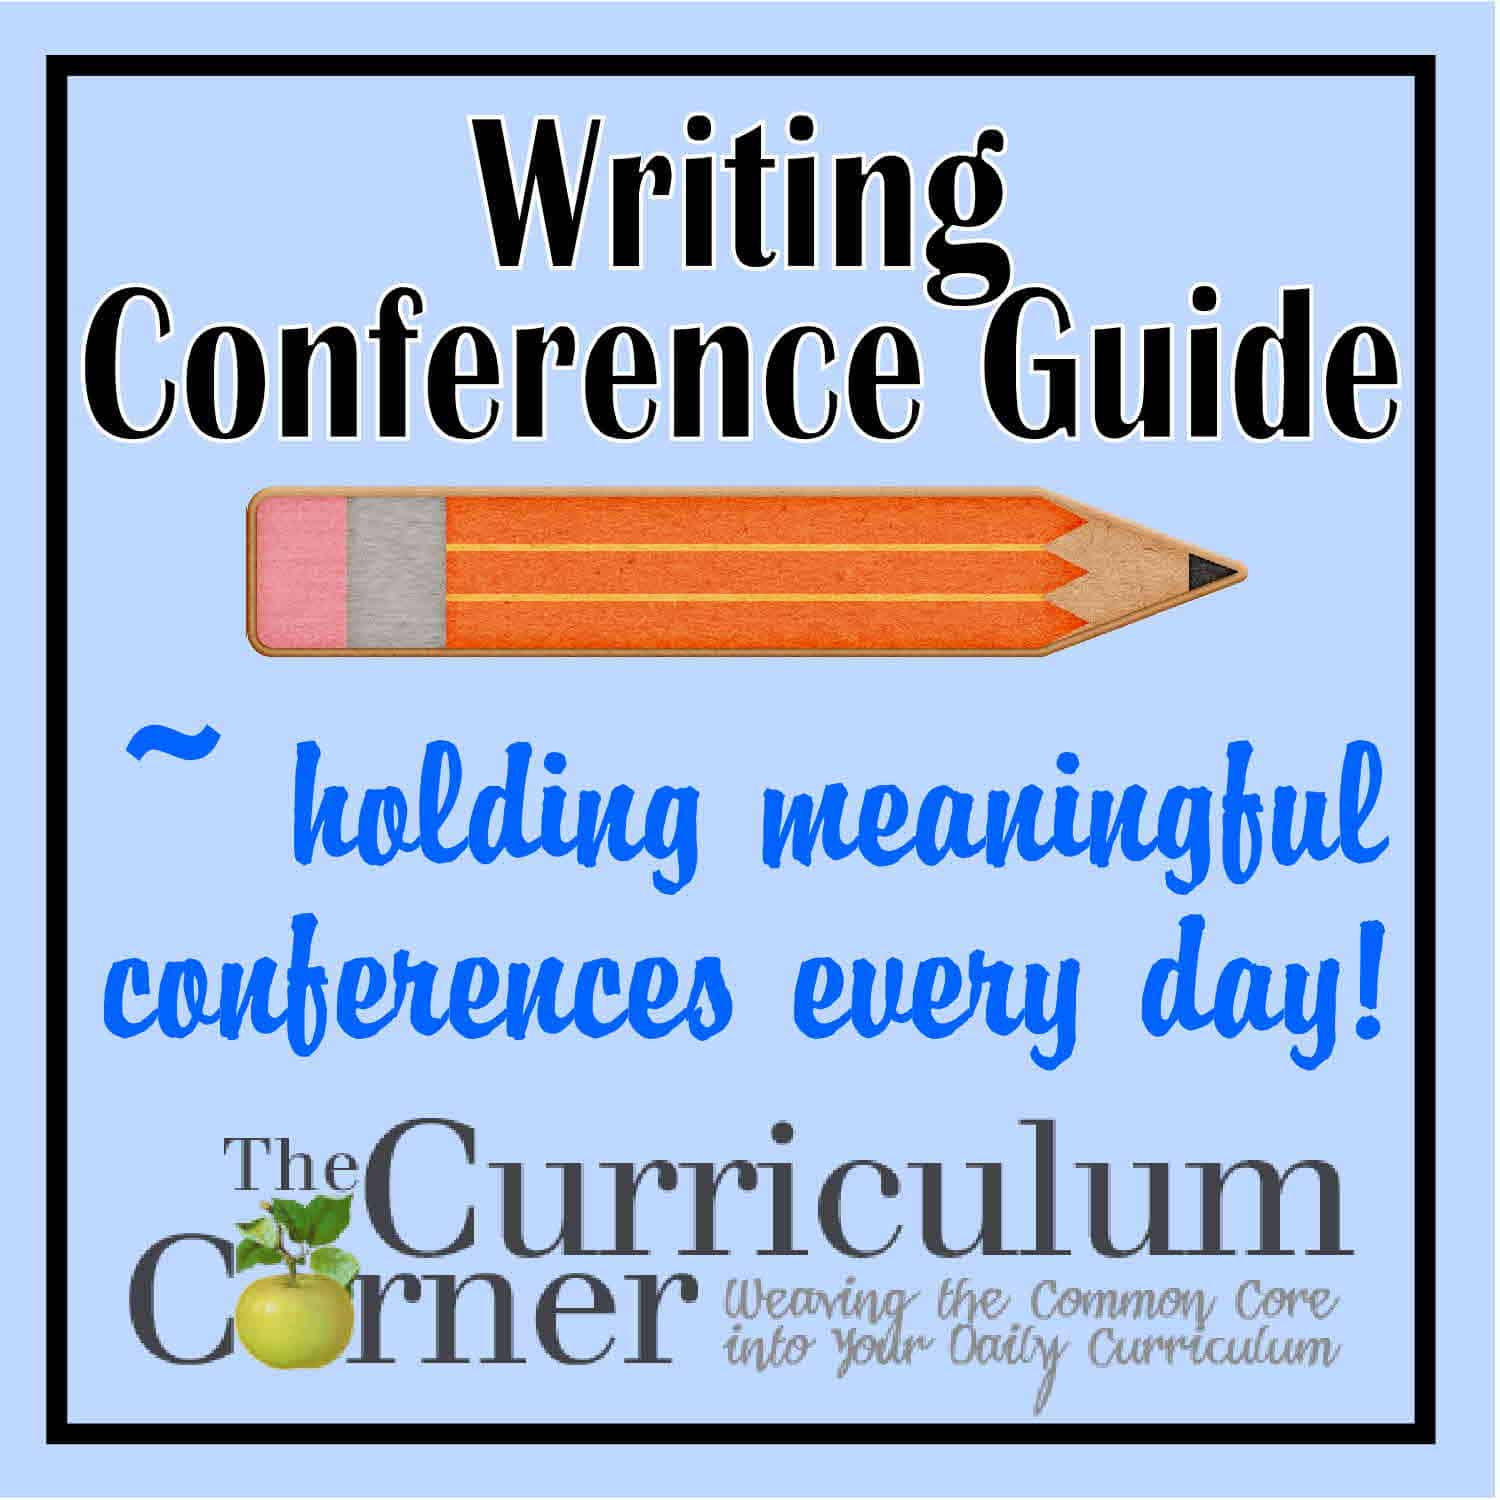 Writing Conference Guide